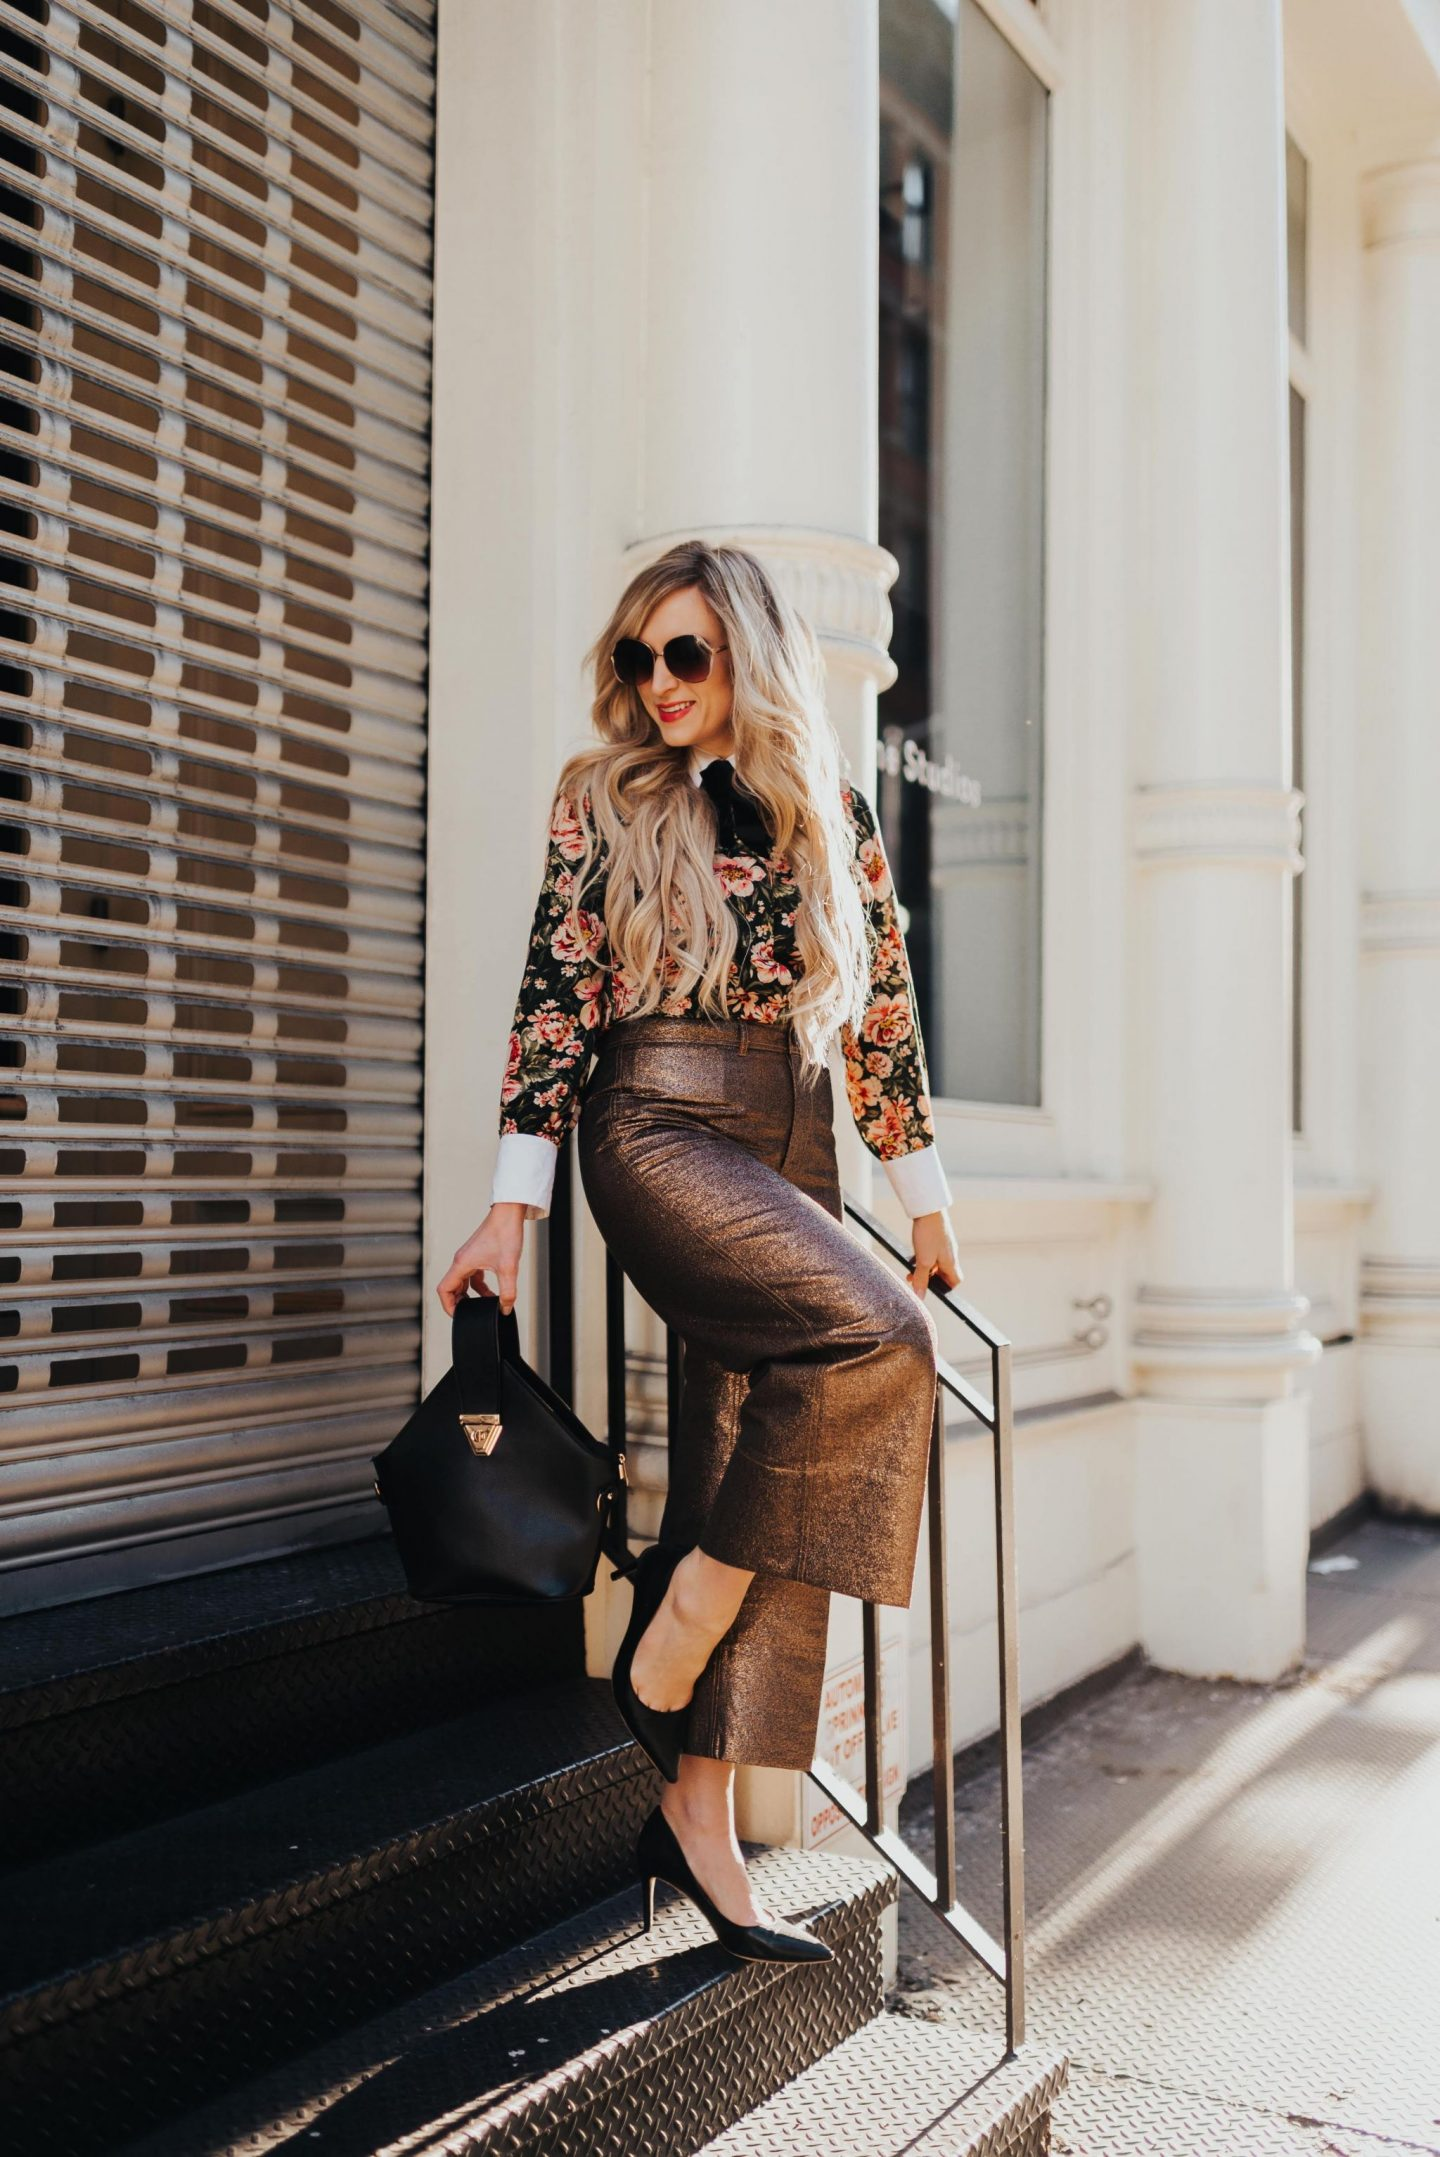 legallee blonde wearing metallic culottes in a spring outfit